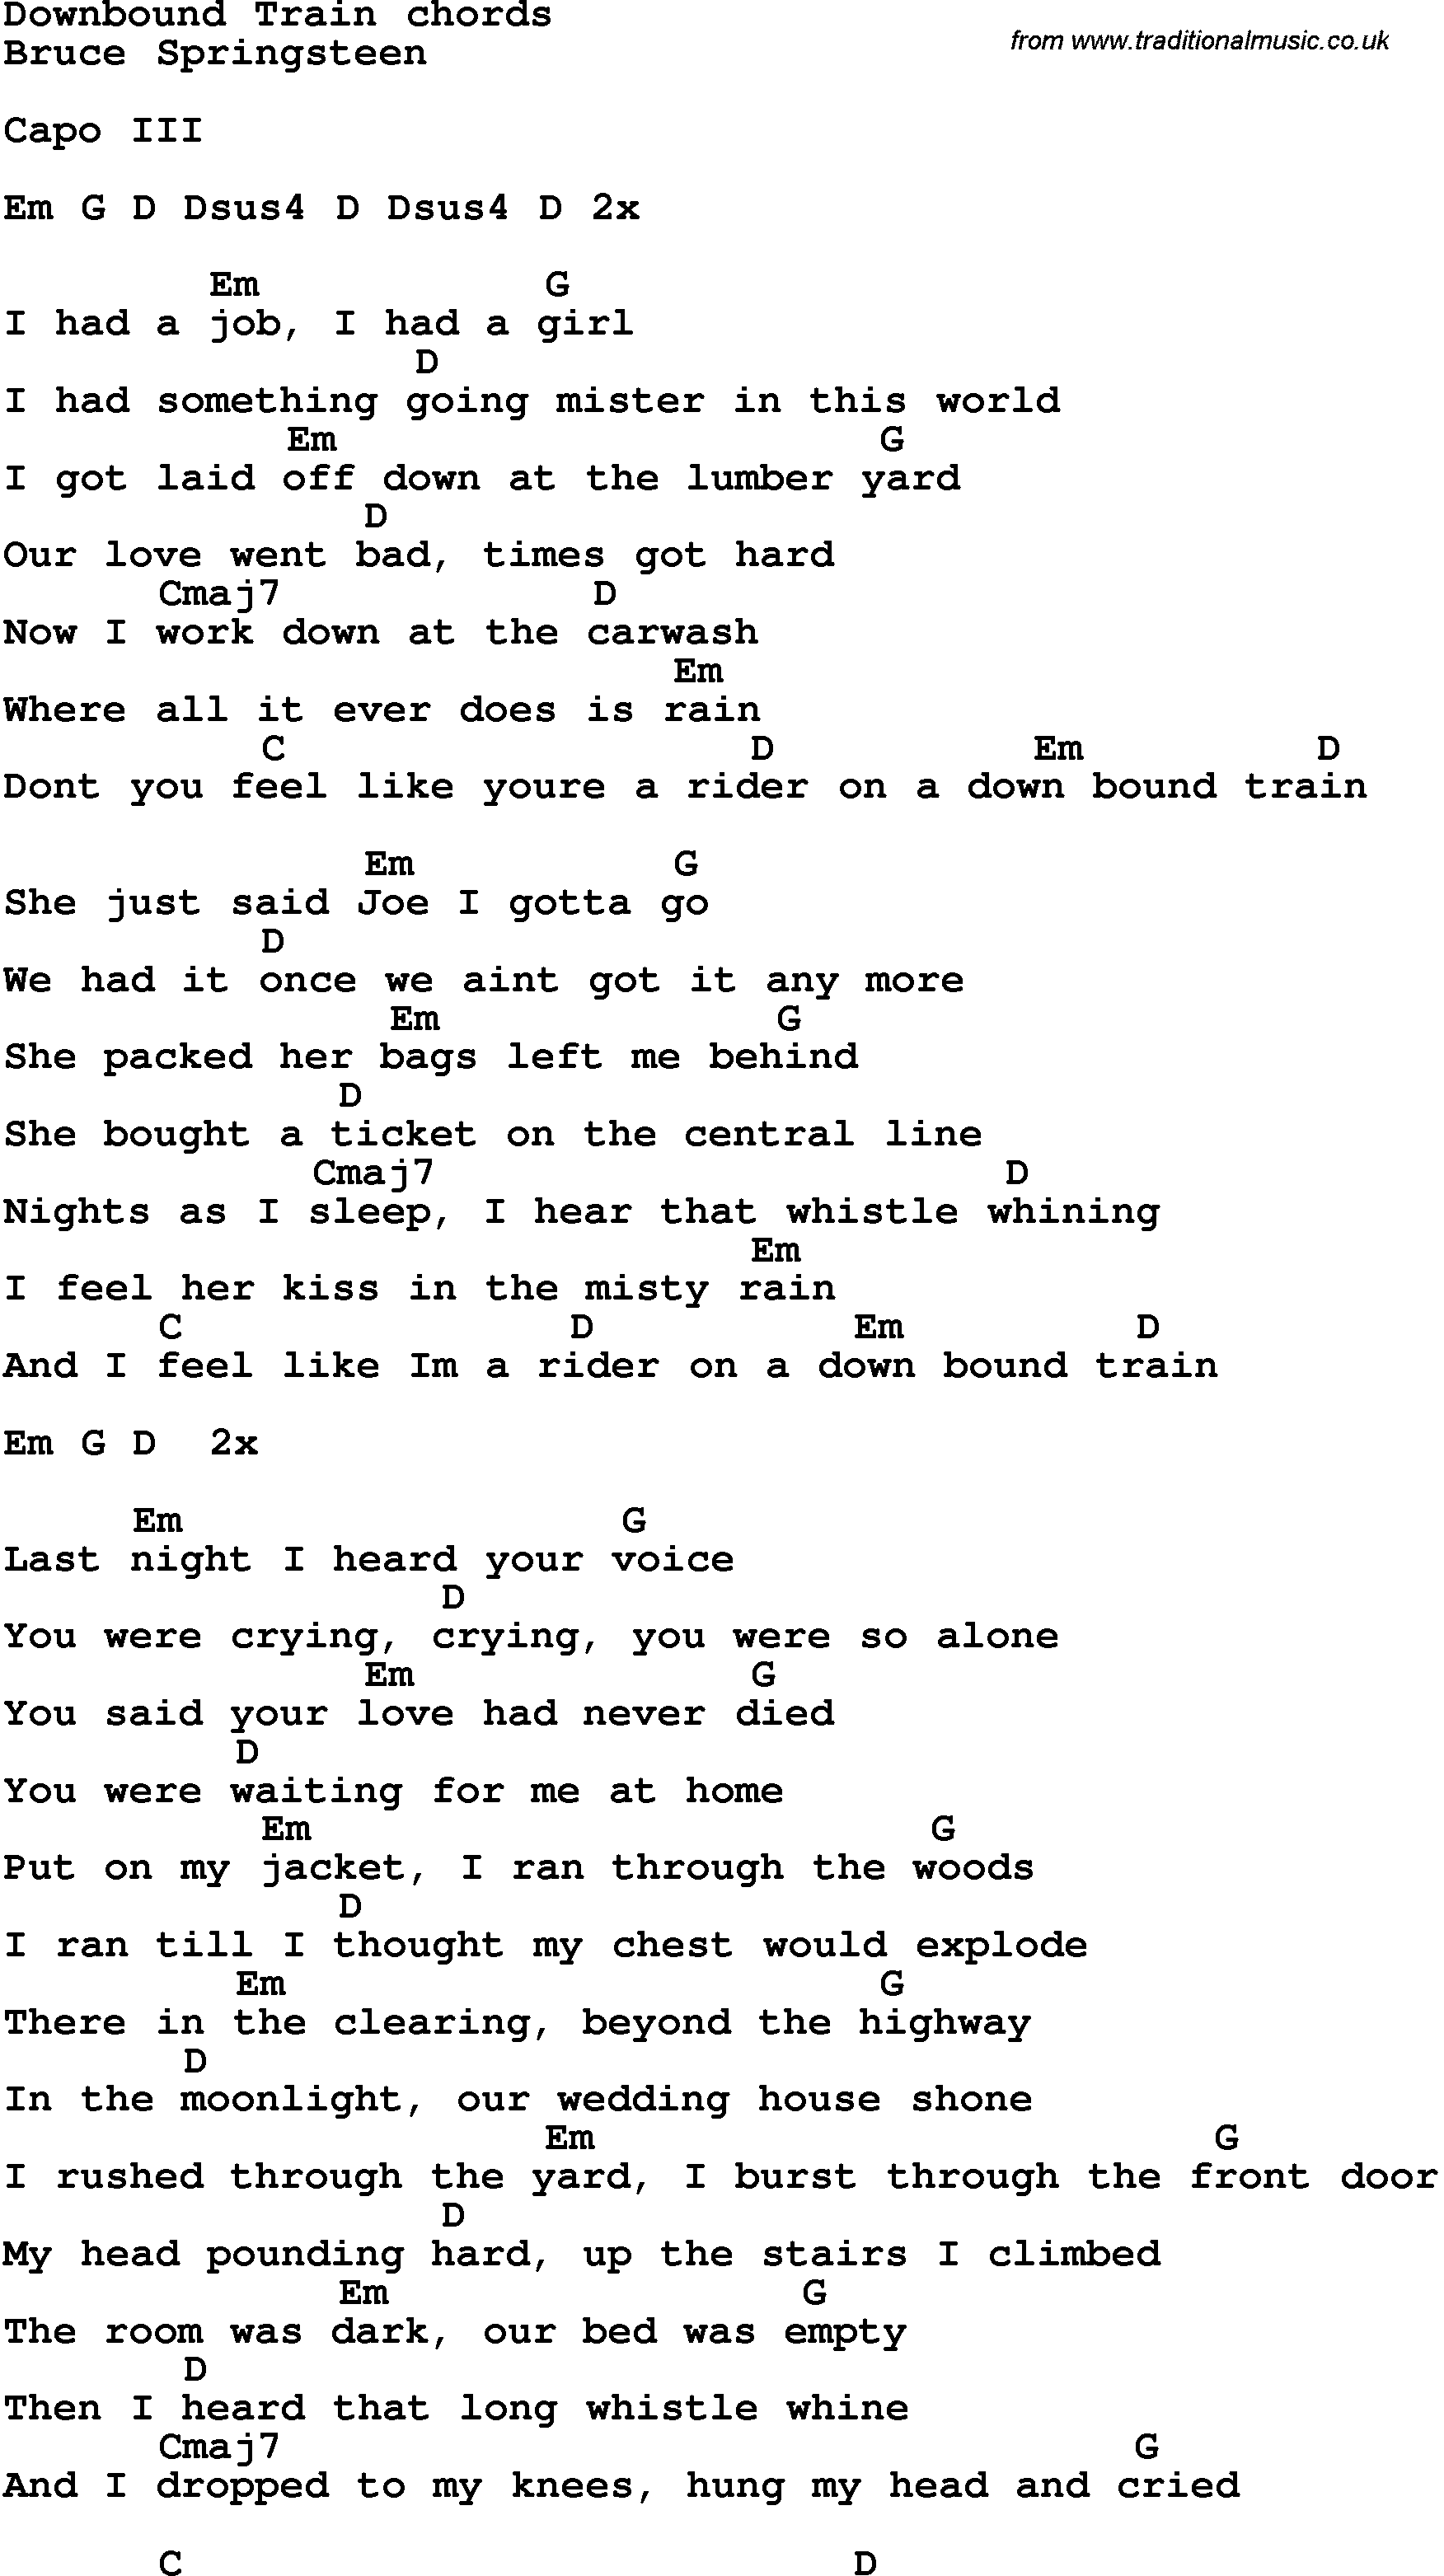 Song Lyrics With Guitar Chords For Downbound Train